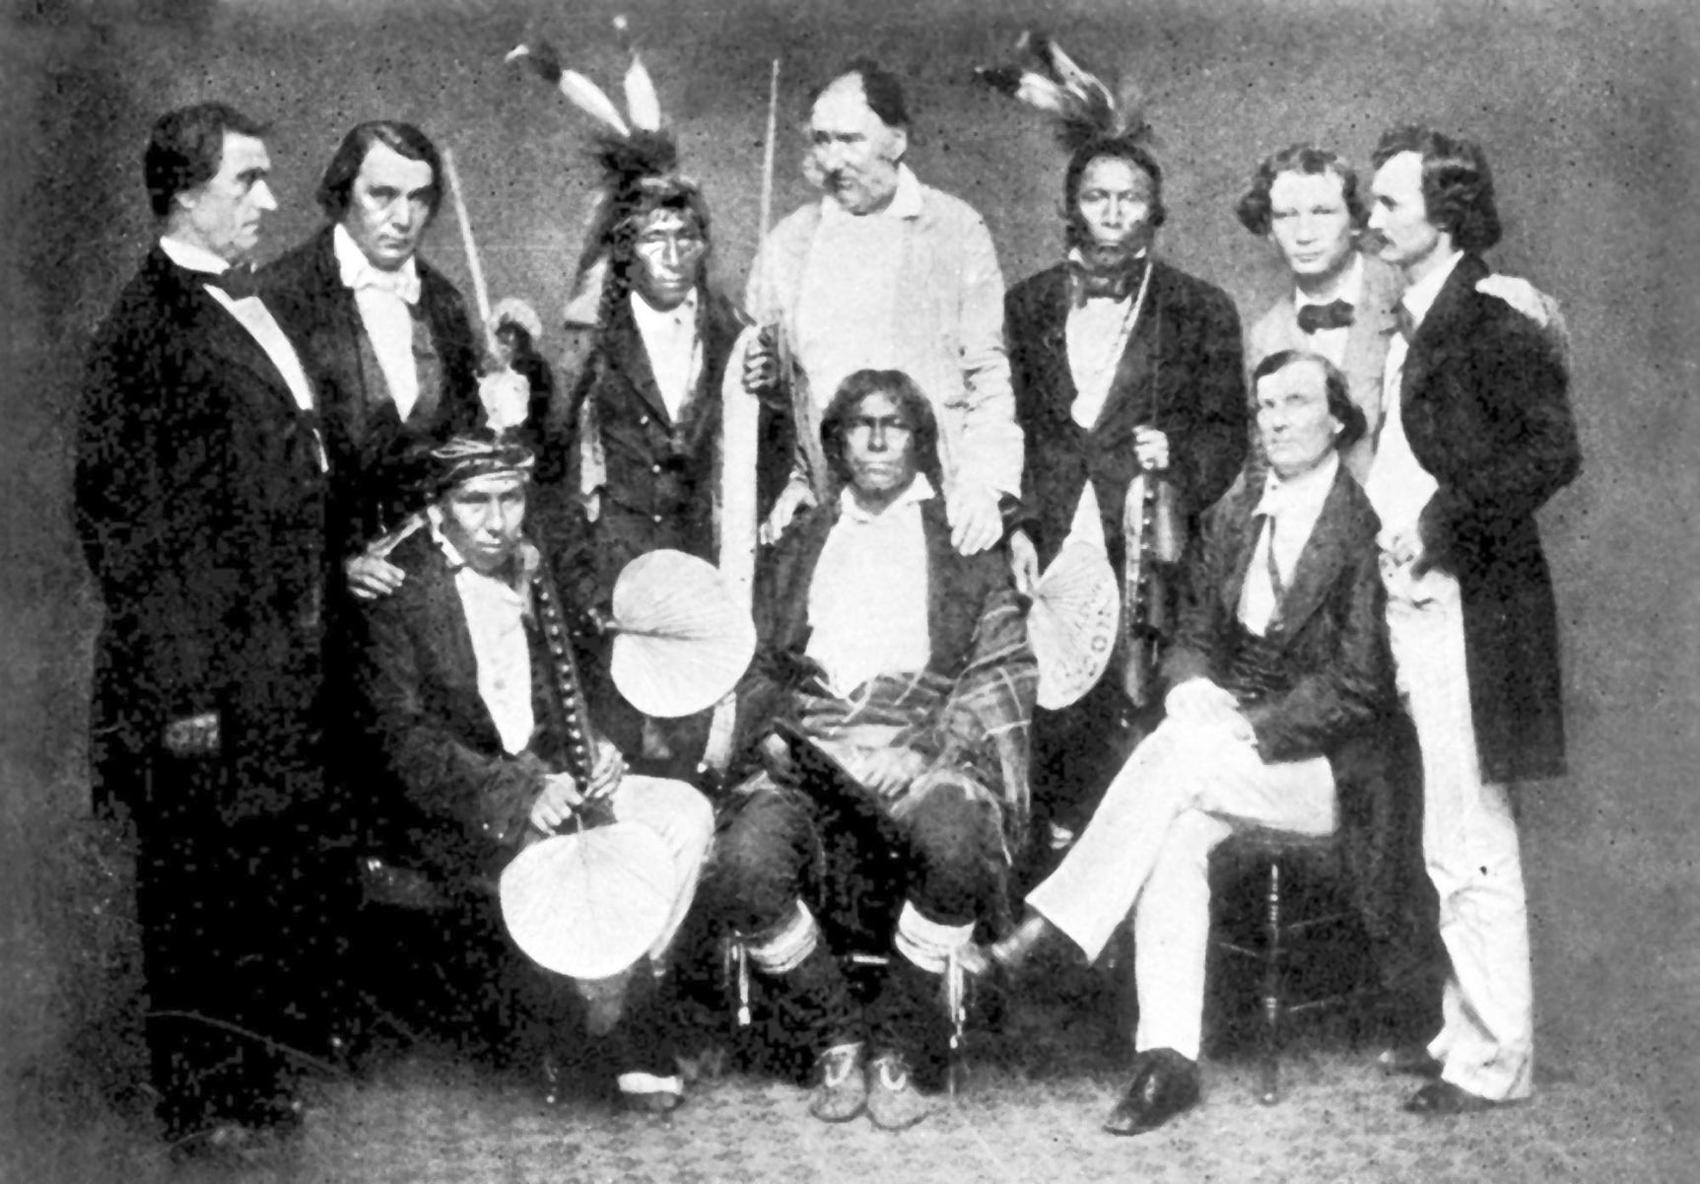 A meeting of whites and leaders of America's first people in 1858. Chief Wabasha III is seated in the center. Standing, from left: Joseph R. Brown, Antoine J. Campbell, Chief Has a War Club, Andrew Robertson, Chief Red Owl, Thomas A. Robertson and Nathaniel R. Brown. Sitting: Chief Mankato, Chief Wabasha III and Henry Belland. lutheran indian ministries native news